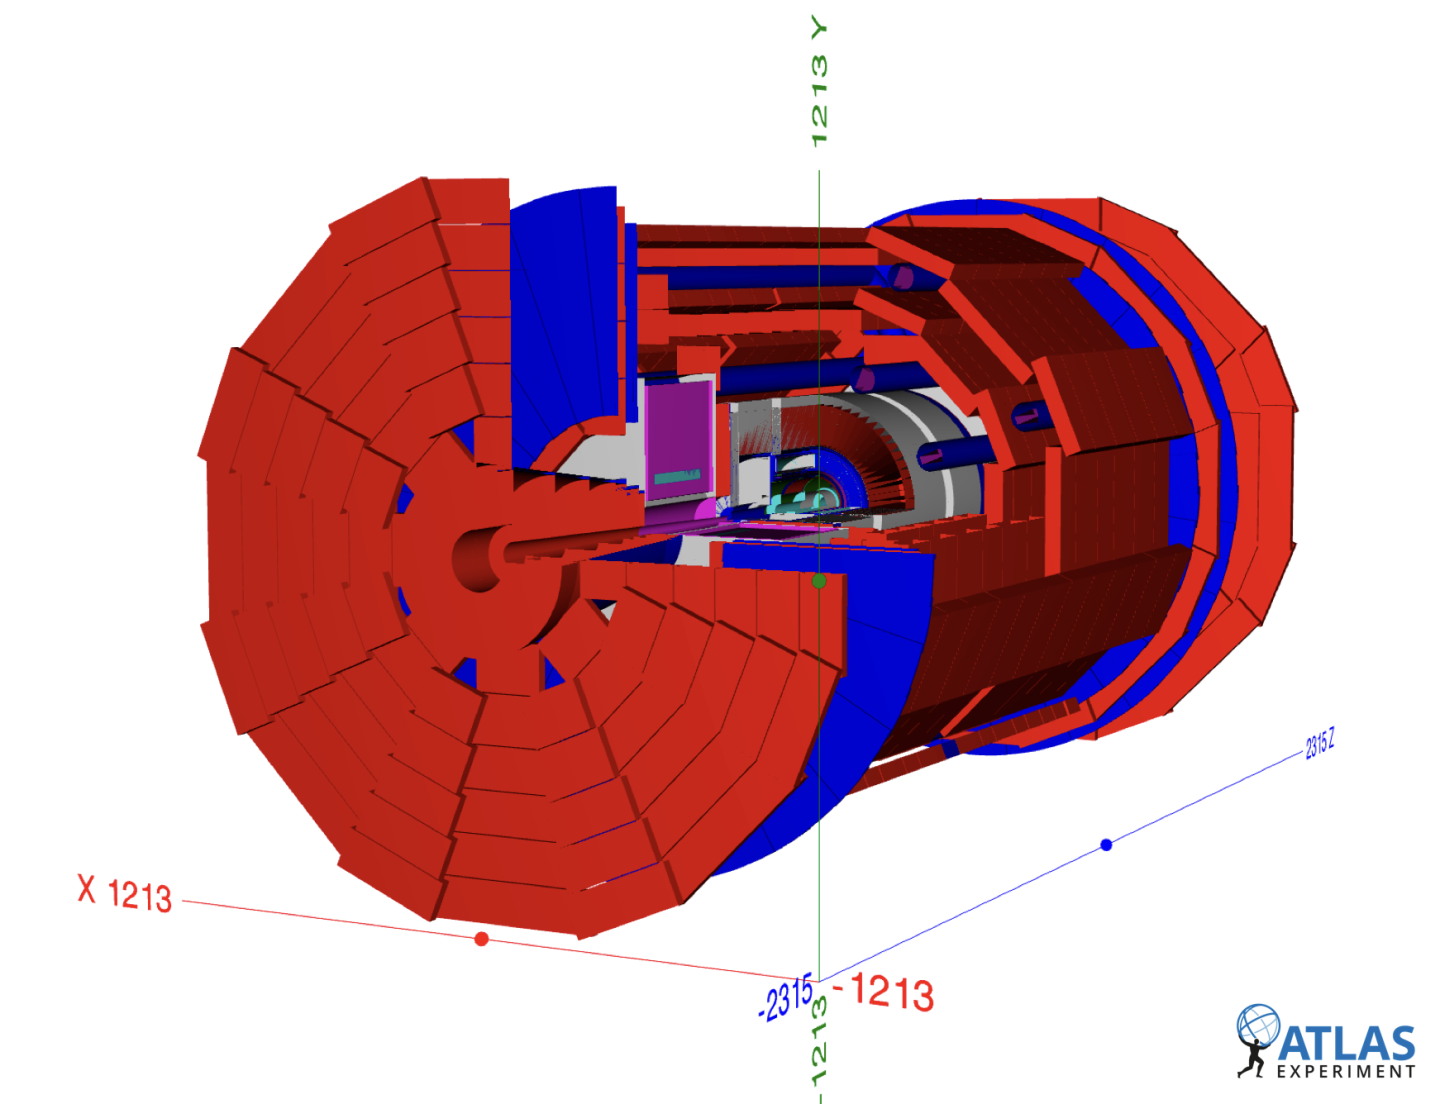 3D visualisation of the ATLAS detector using the tools provided for analysing the open data